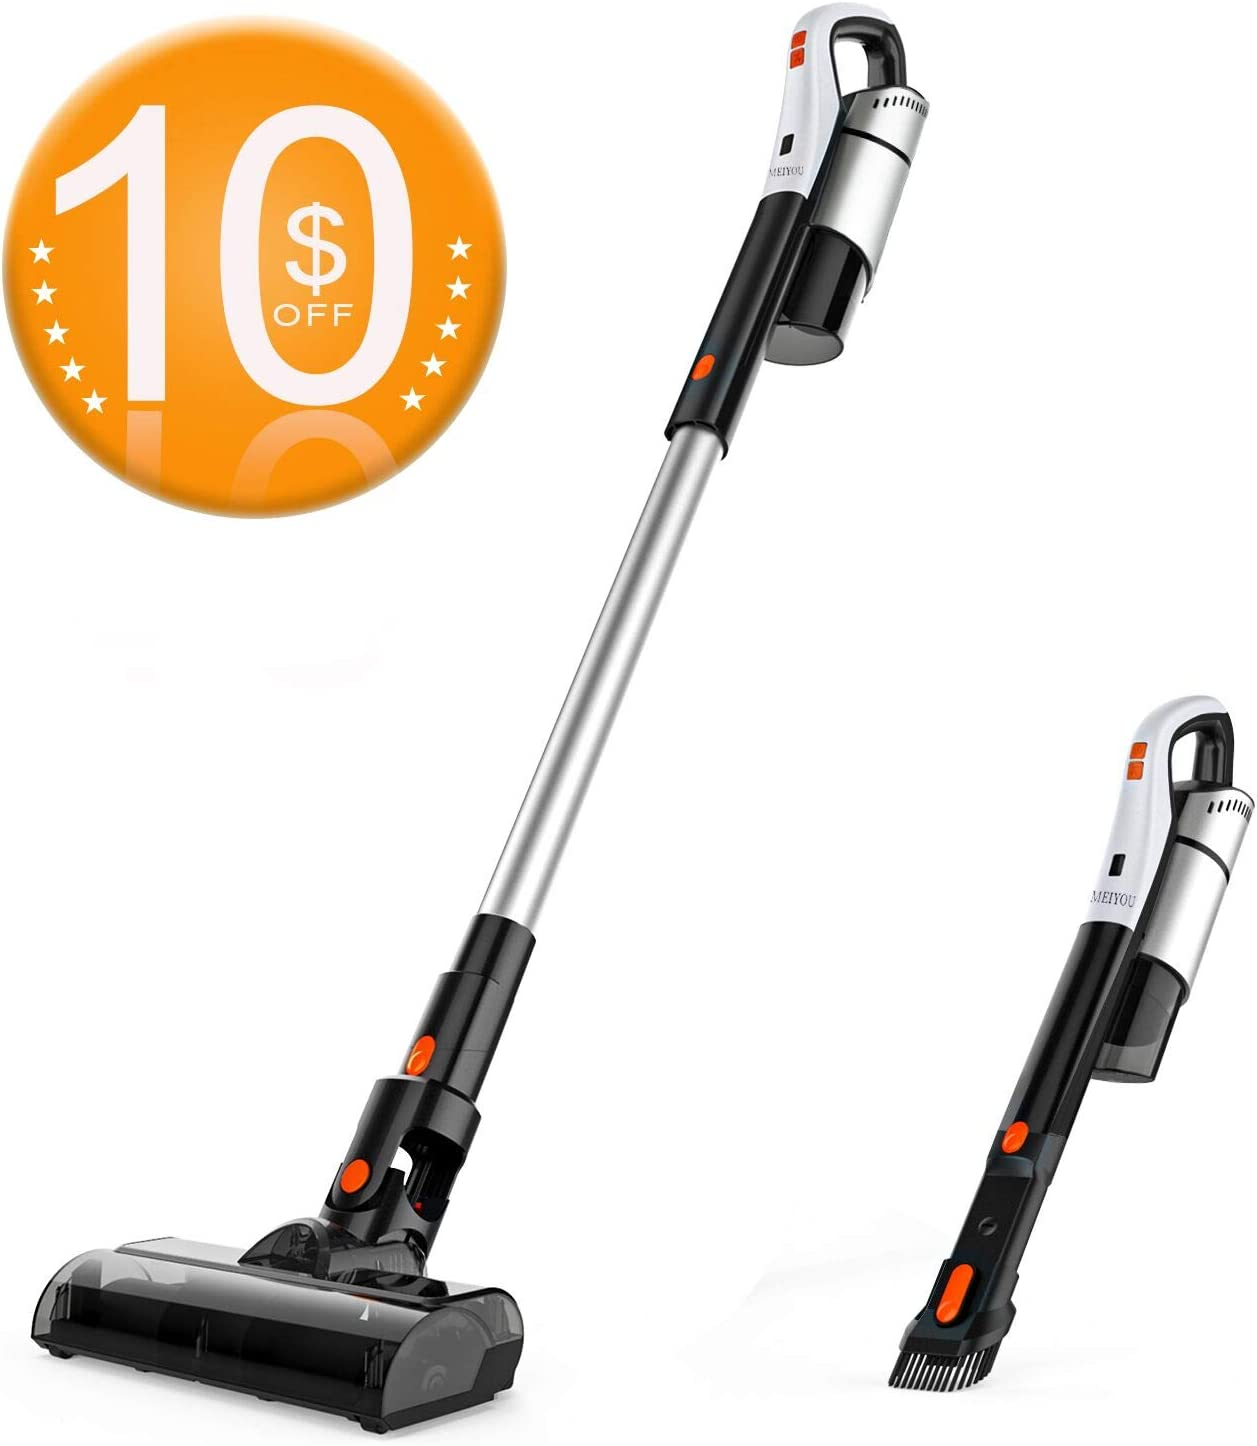 Cordless Vacuum, MEIYOU Stick Vacuum Cleaner, 18KPa Powerful Cleaning Lightweight 4 in 1 Handheld Vacuum with Rechargeable Lithium Ion Battery